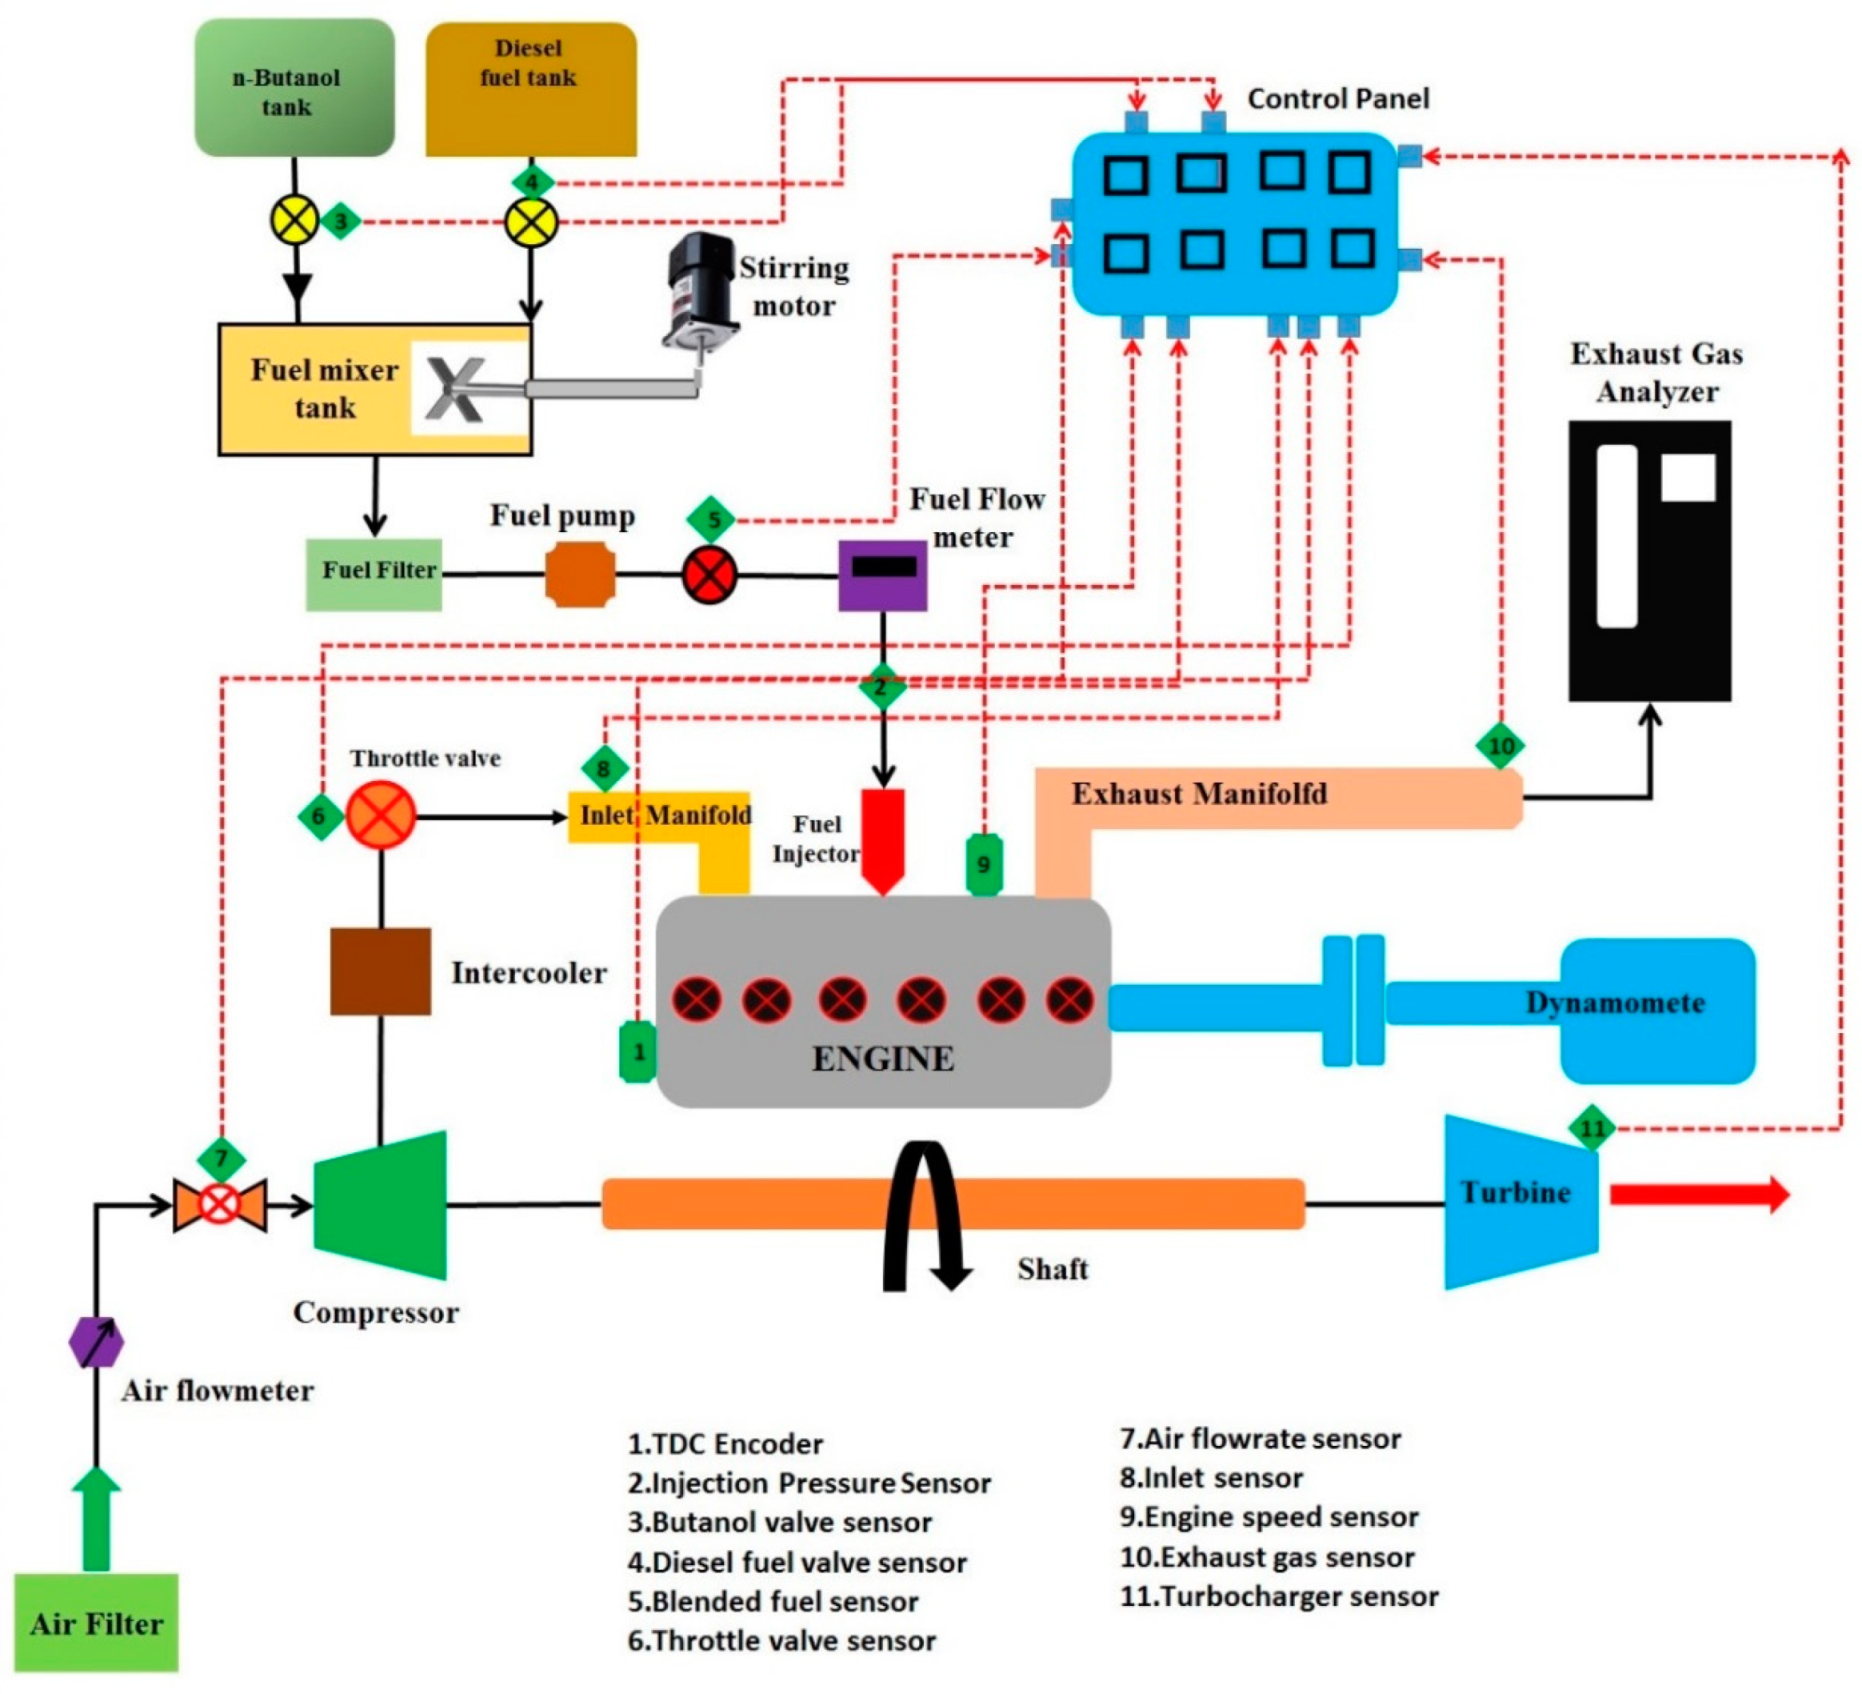 Processes Free Full Text Influence Of Injection Timing On Performance And Exhaust Emission Of Ci Engine Fuelled With Butanol Diesel Using A 1d Gt Power Model Html